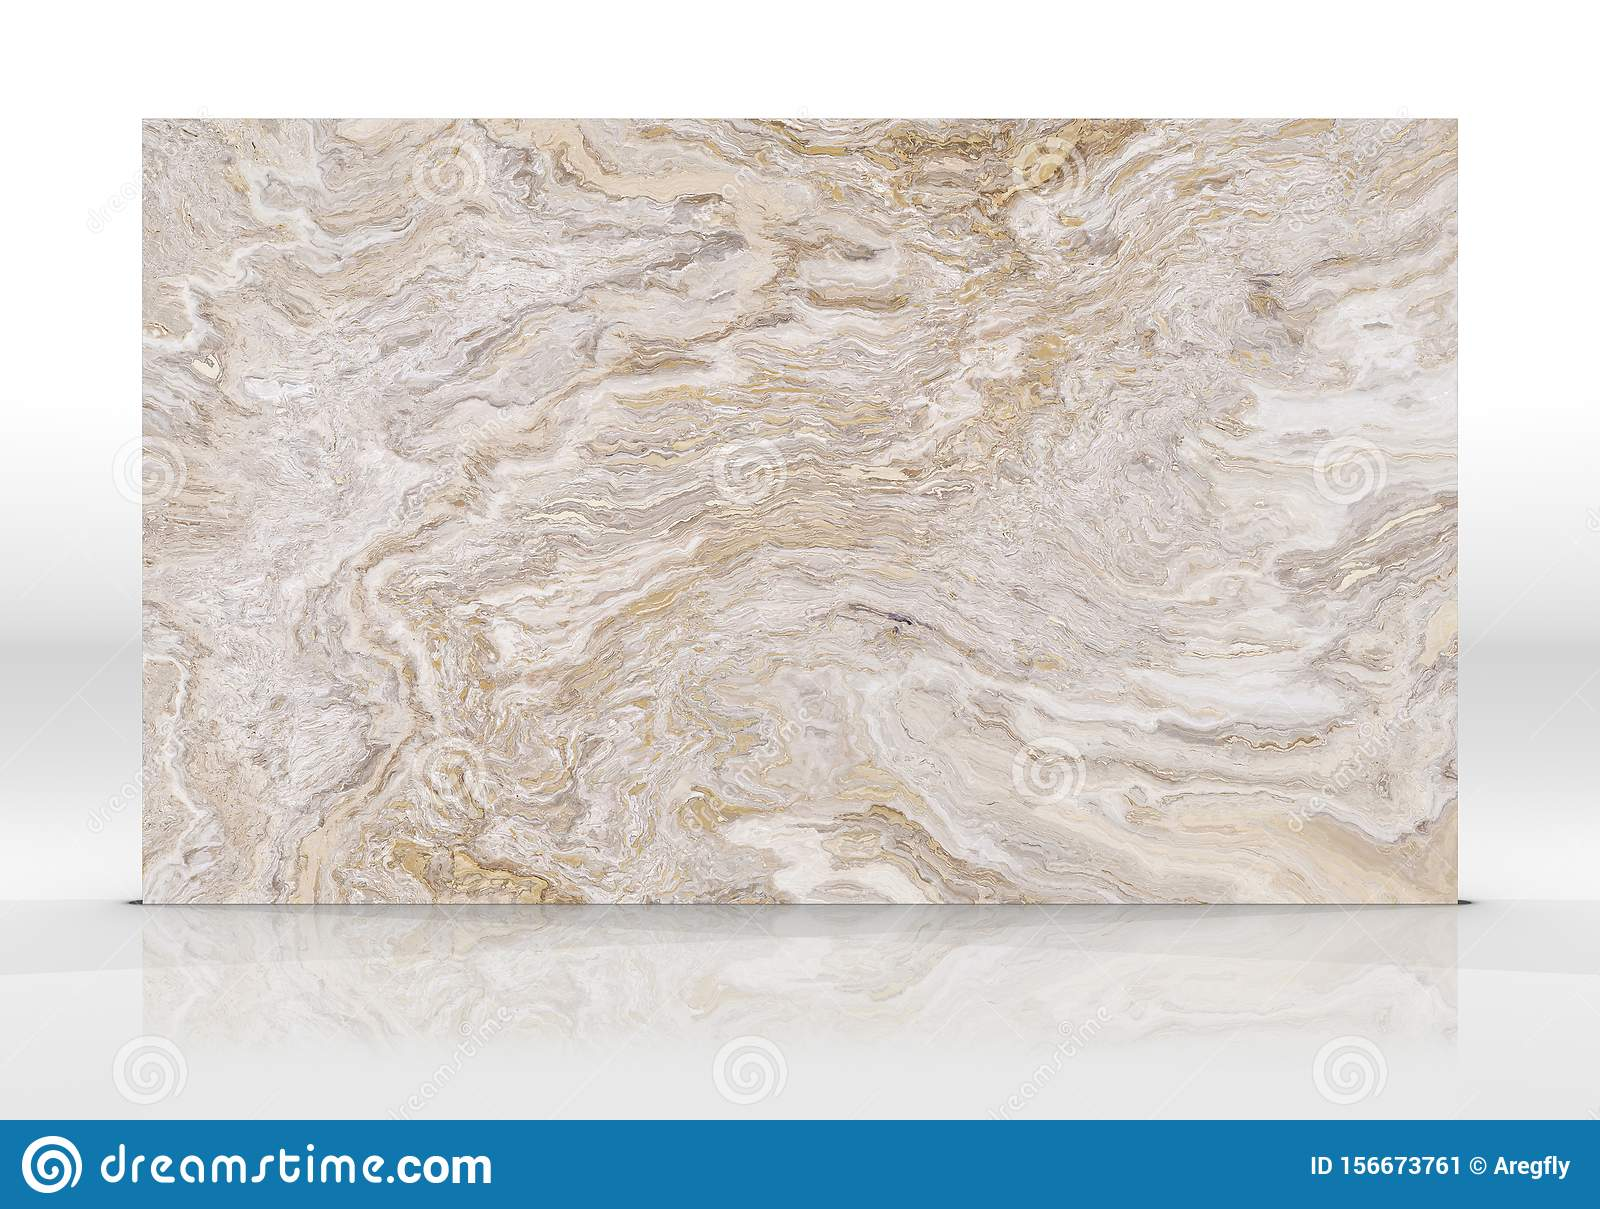 Travertine Marble Tile Texture Stock Image Image Of Background Abstract 156673761